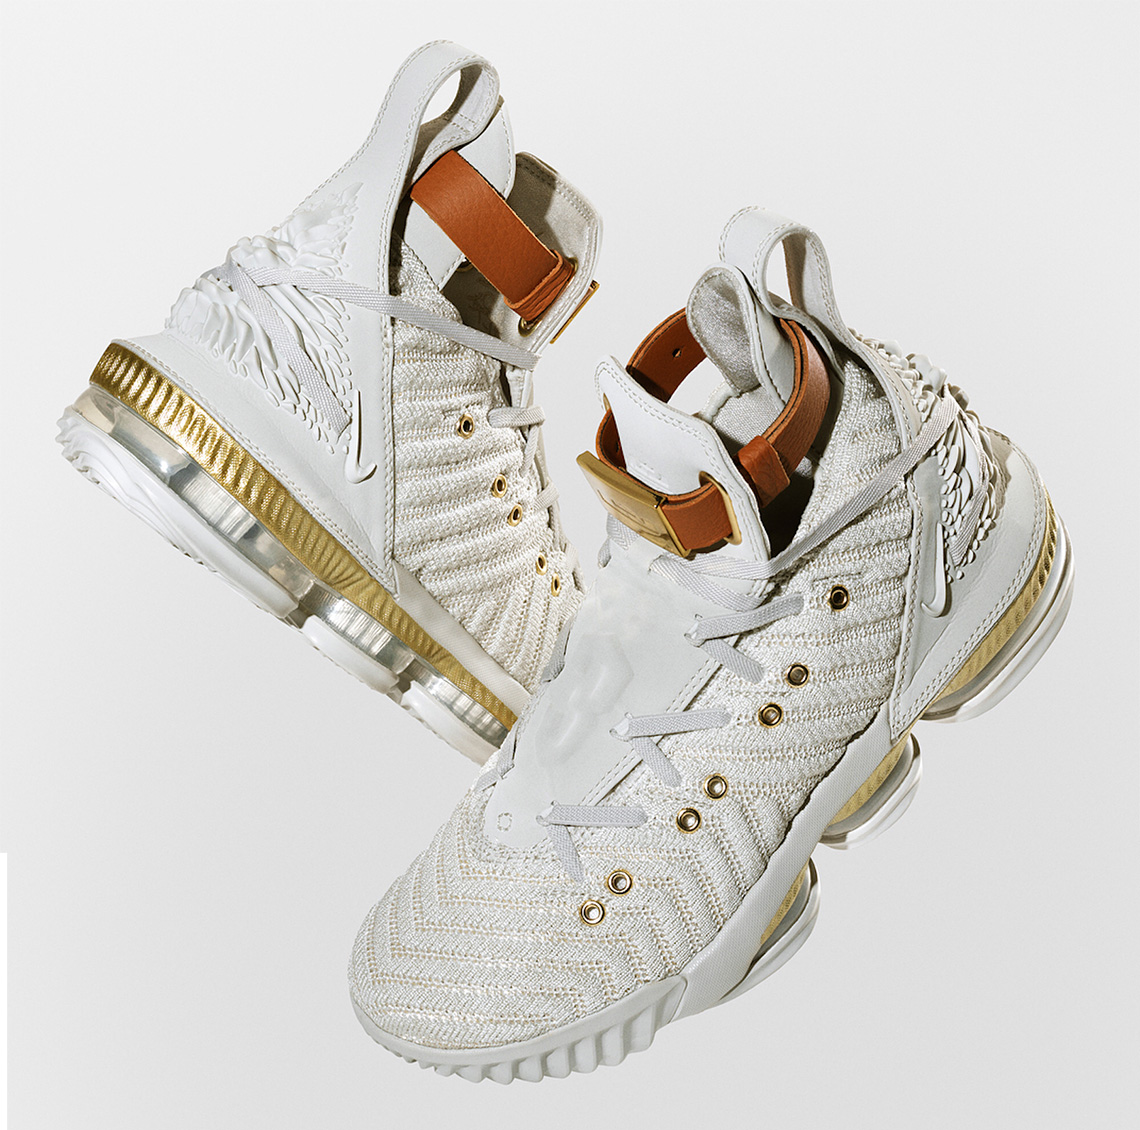 finest selection 9c208 75db9 Nike LeBron 16 HFR Harlem s Fashion Row Release Date   SneakerNews.com